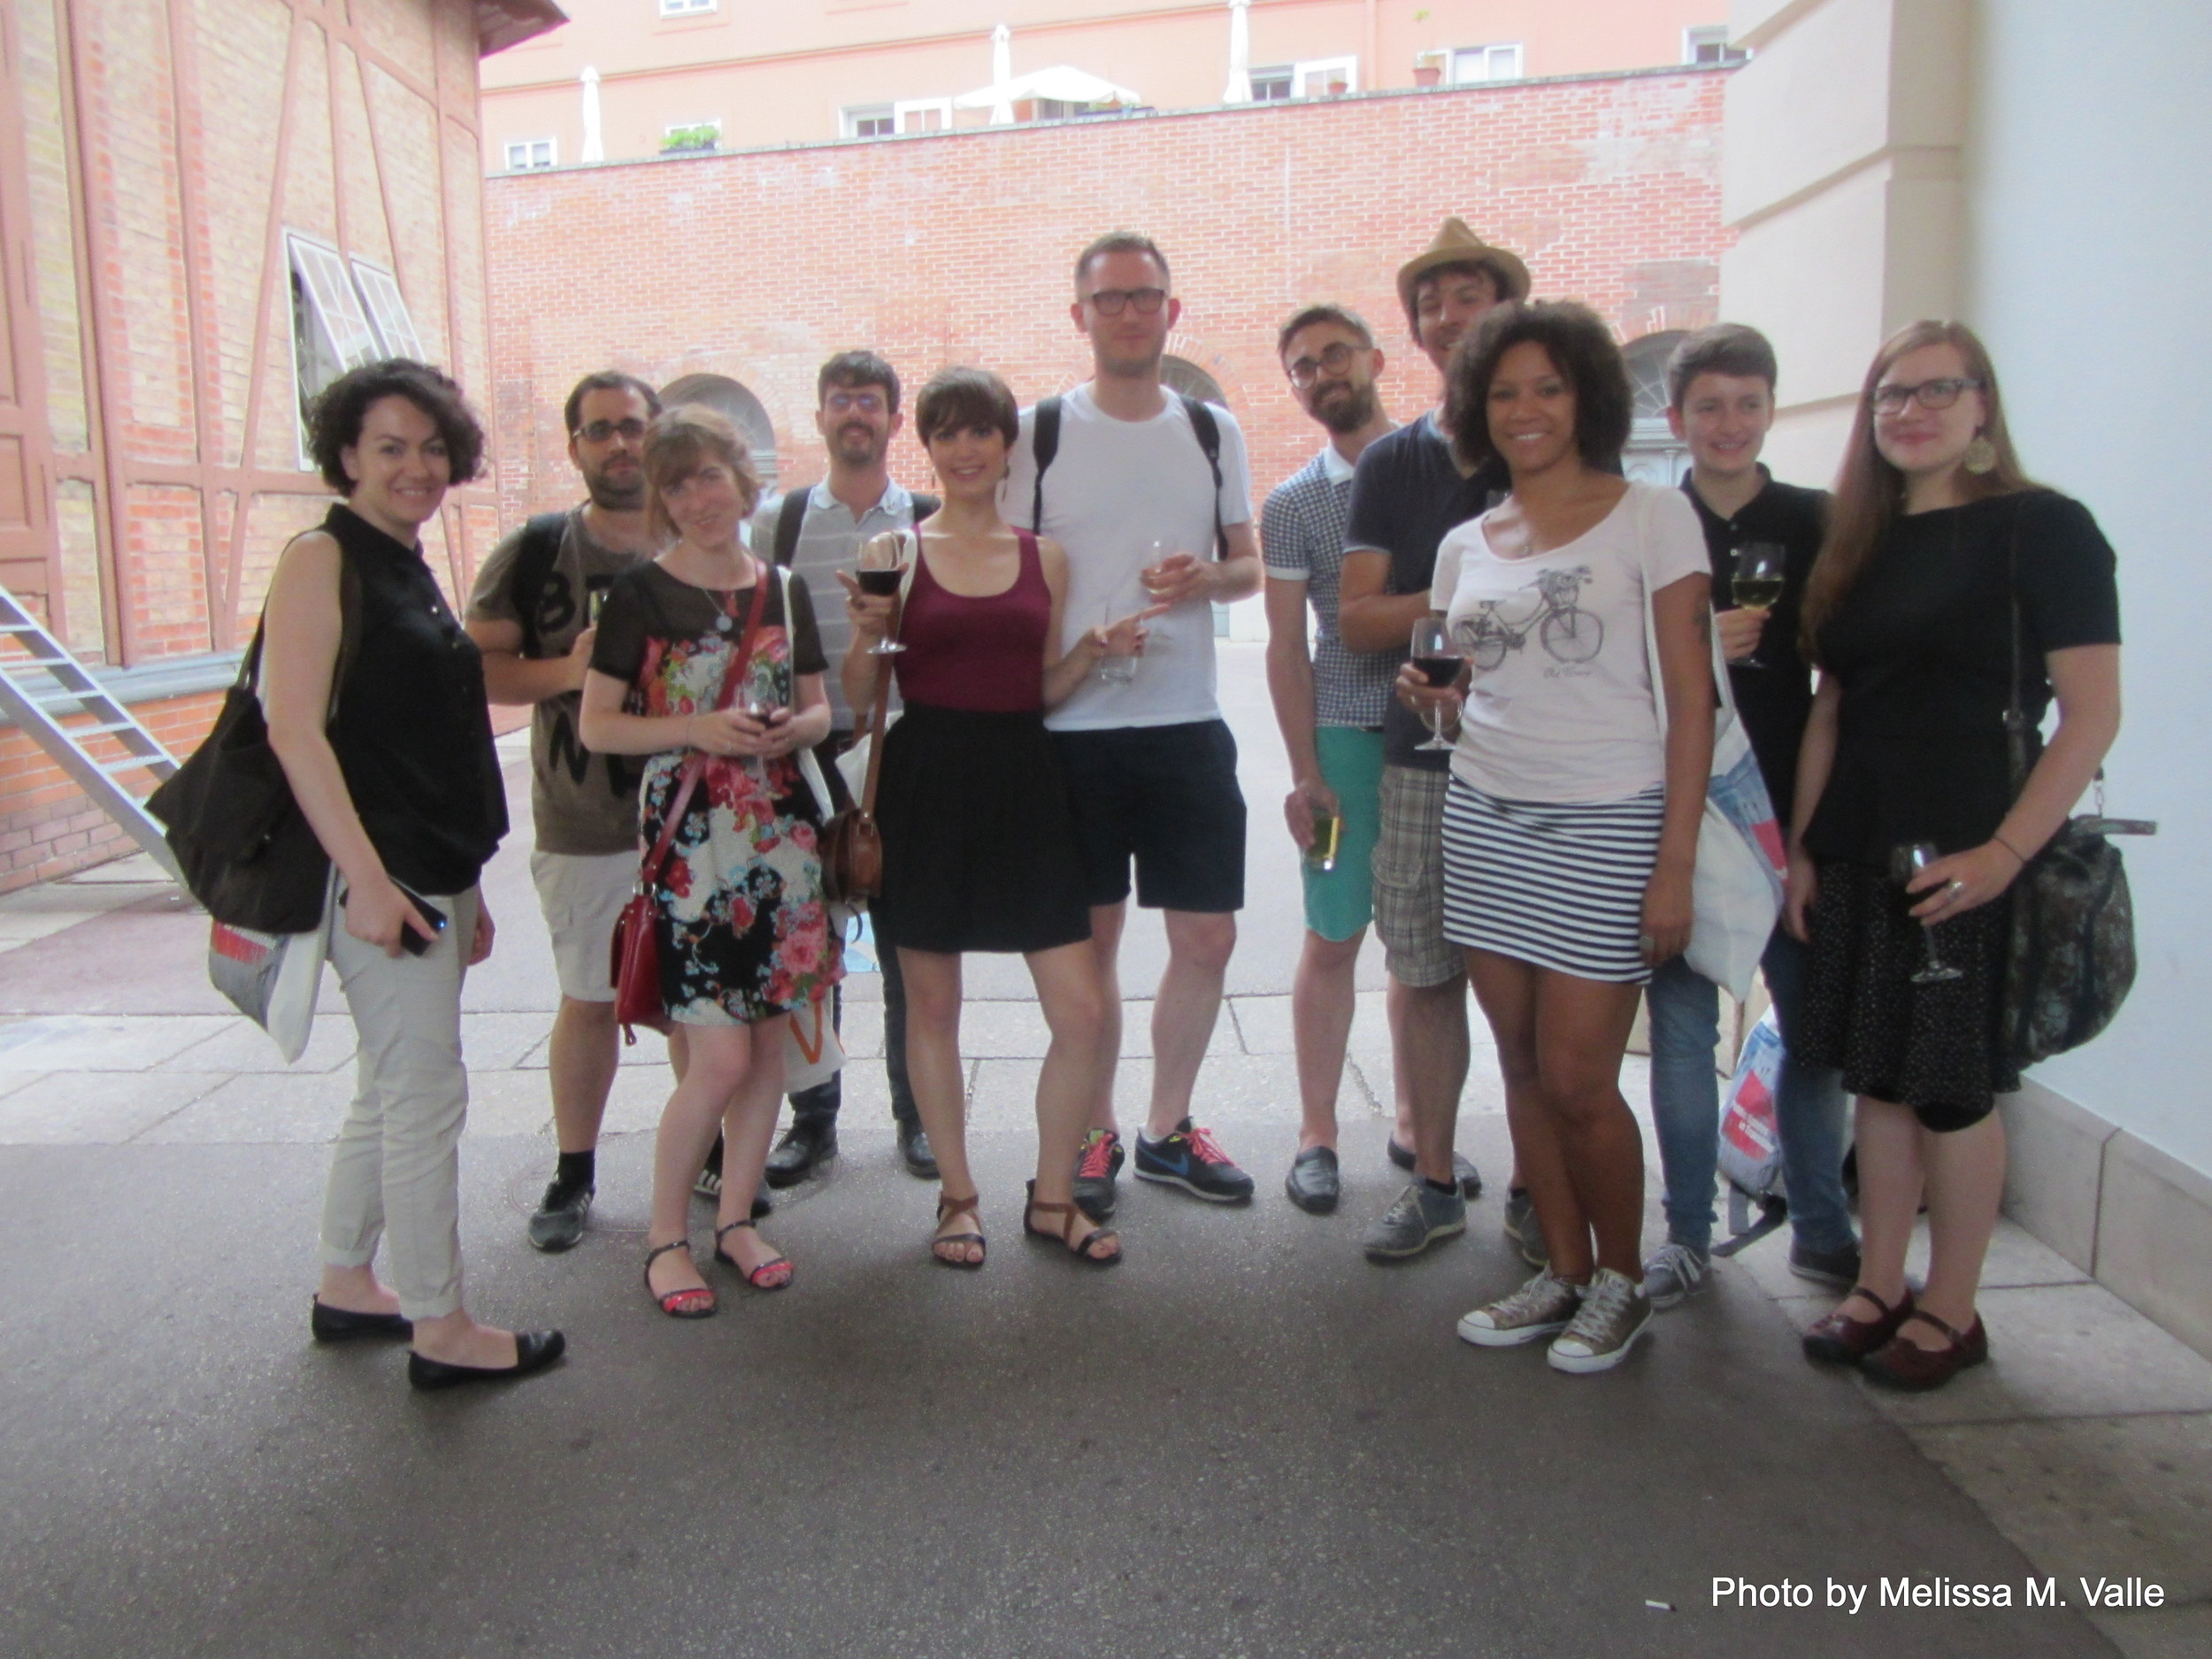 7.7.14 Vienna, Austria-wining it up in Museum Quartier after Amin lecture (2).JPG